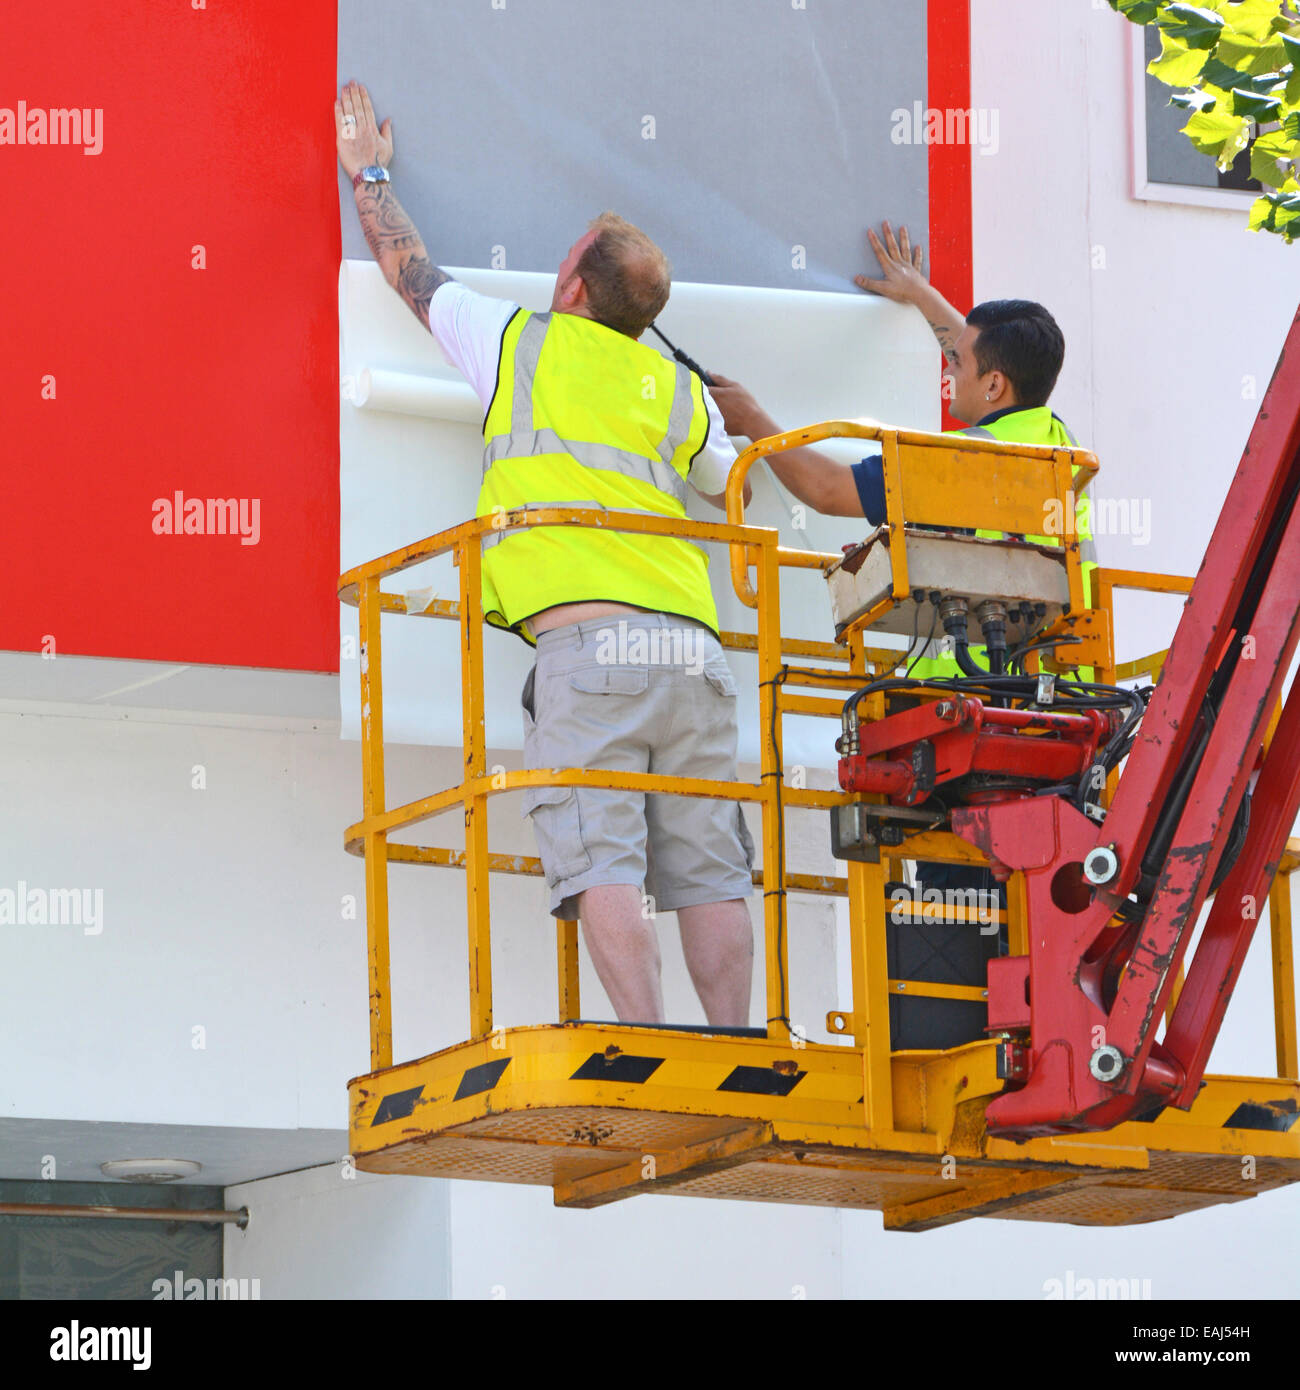 Cherry picker access platform in use by workmen fixing sheets of graphics forming a big advert display on side of - Stock Image